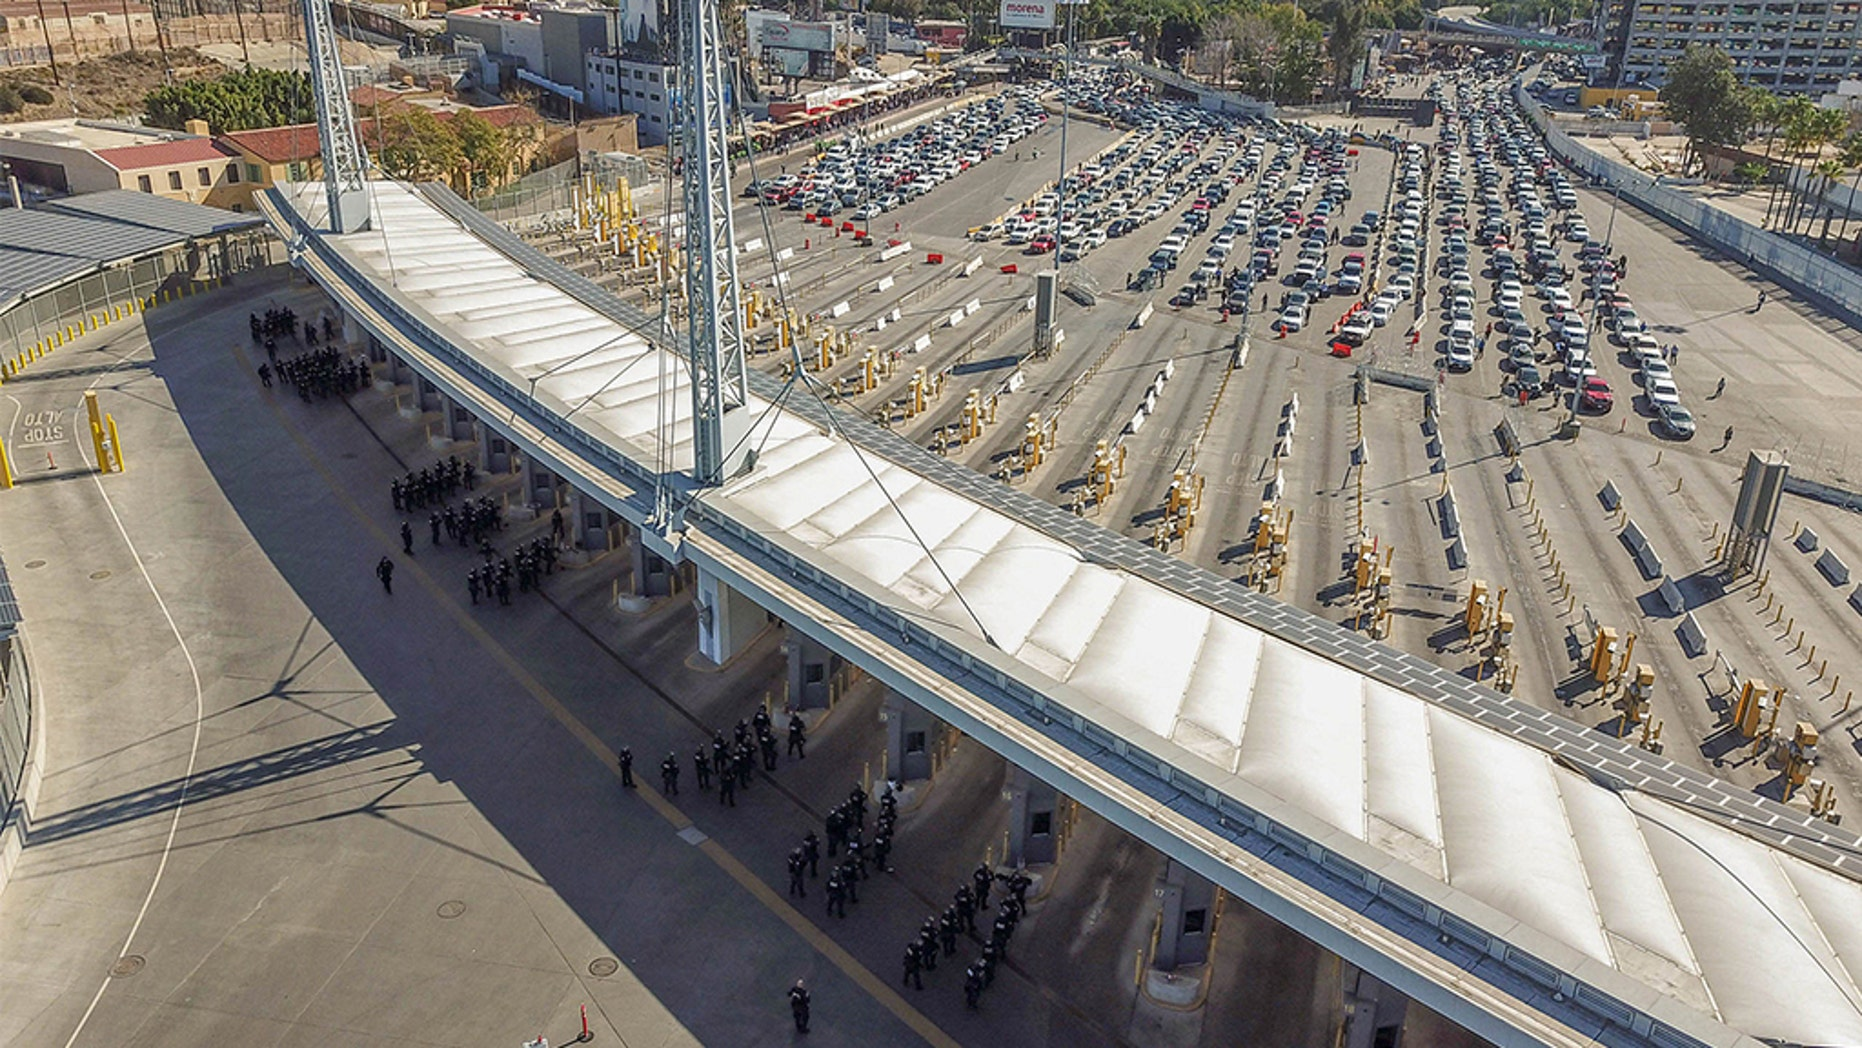 Personnel from  Customs and Border Protection and the Defense Department  secure the San Ysidro Port of Entry against attempts to illegally enter the United States from Mexico.